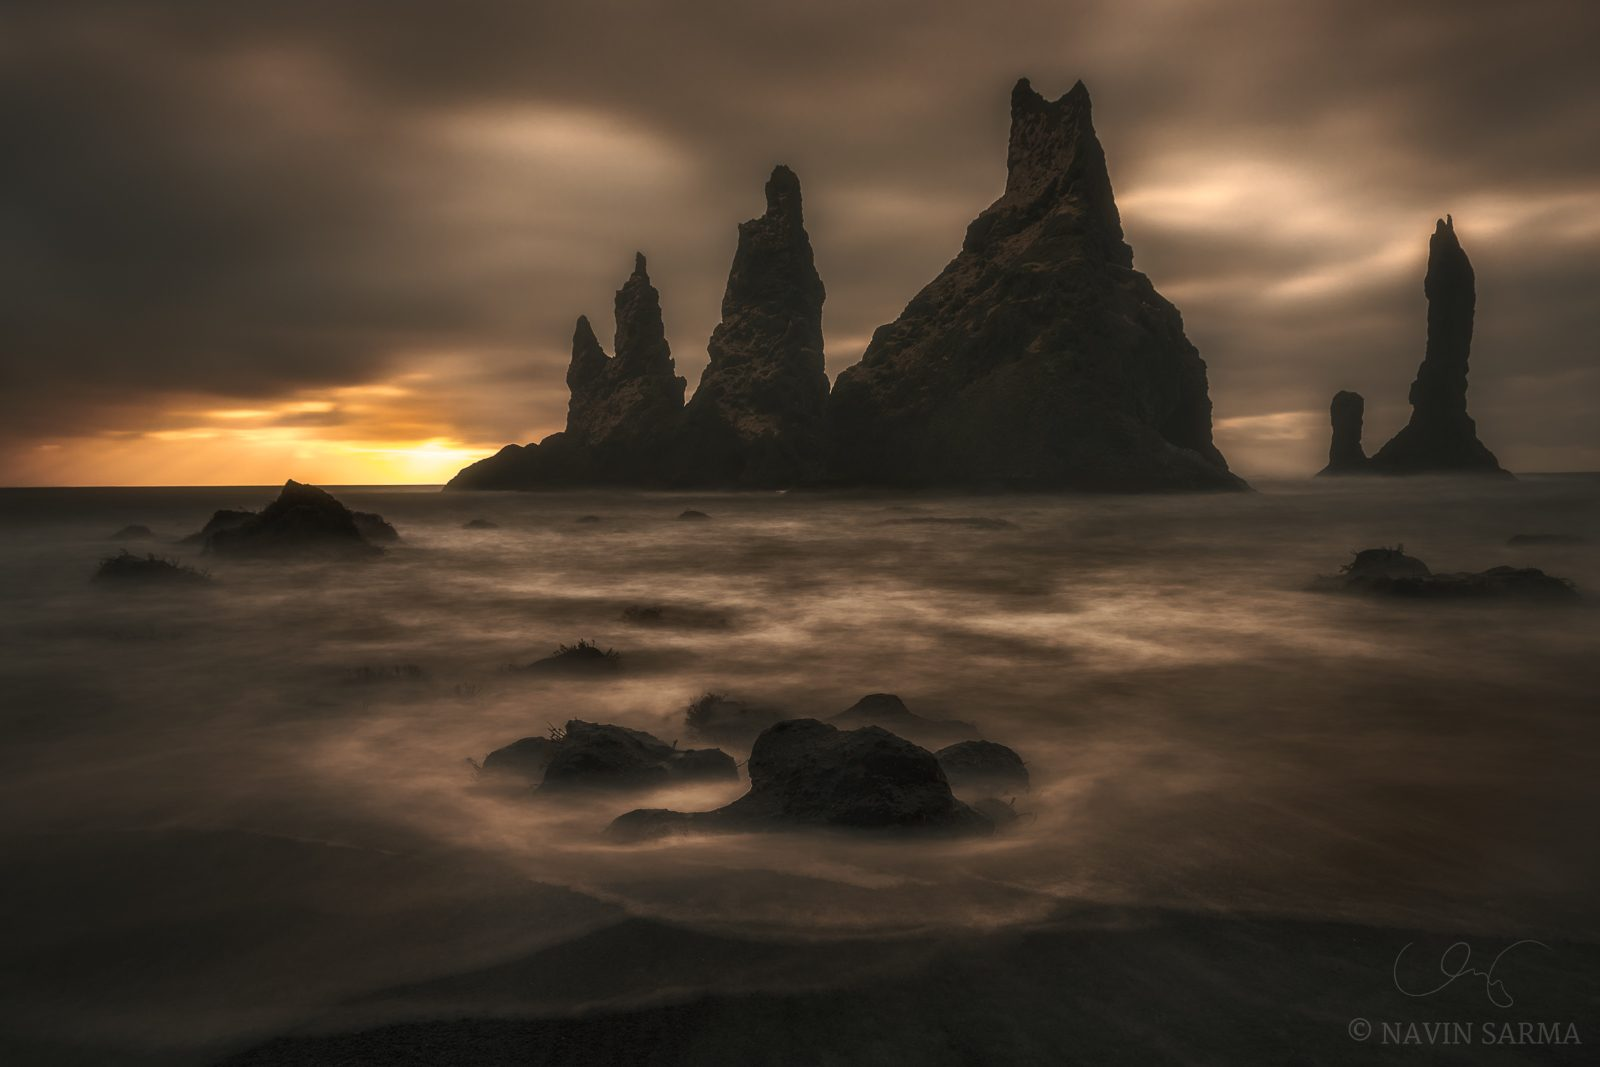 Enter Darkness - A long exposure at sunrise creates a moody scene upon full view of the impressive sea stacks at Reynisfjara beach